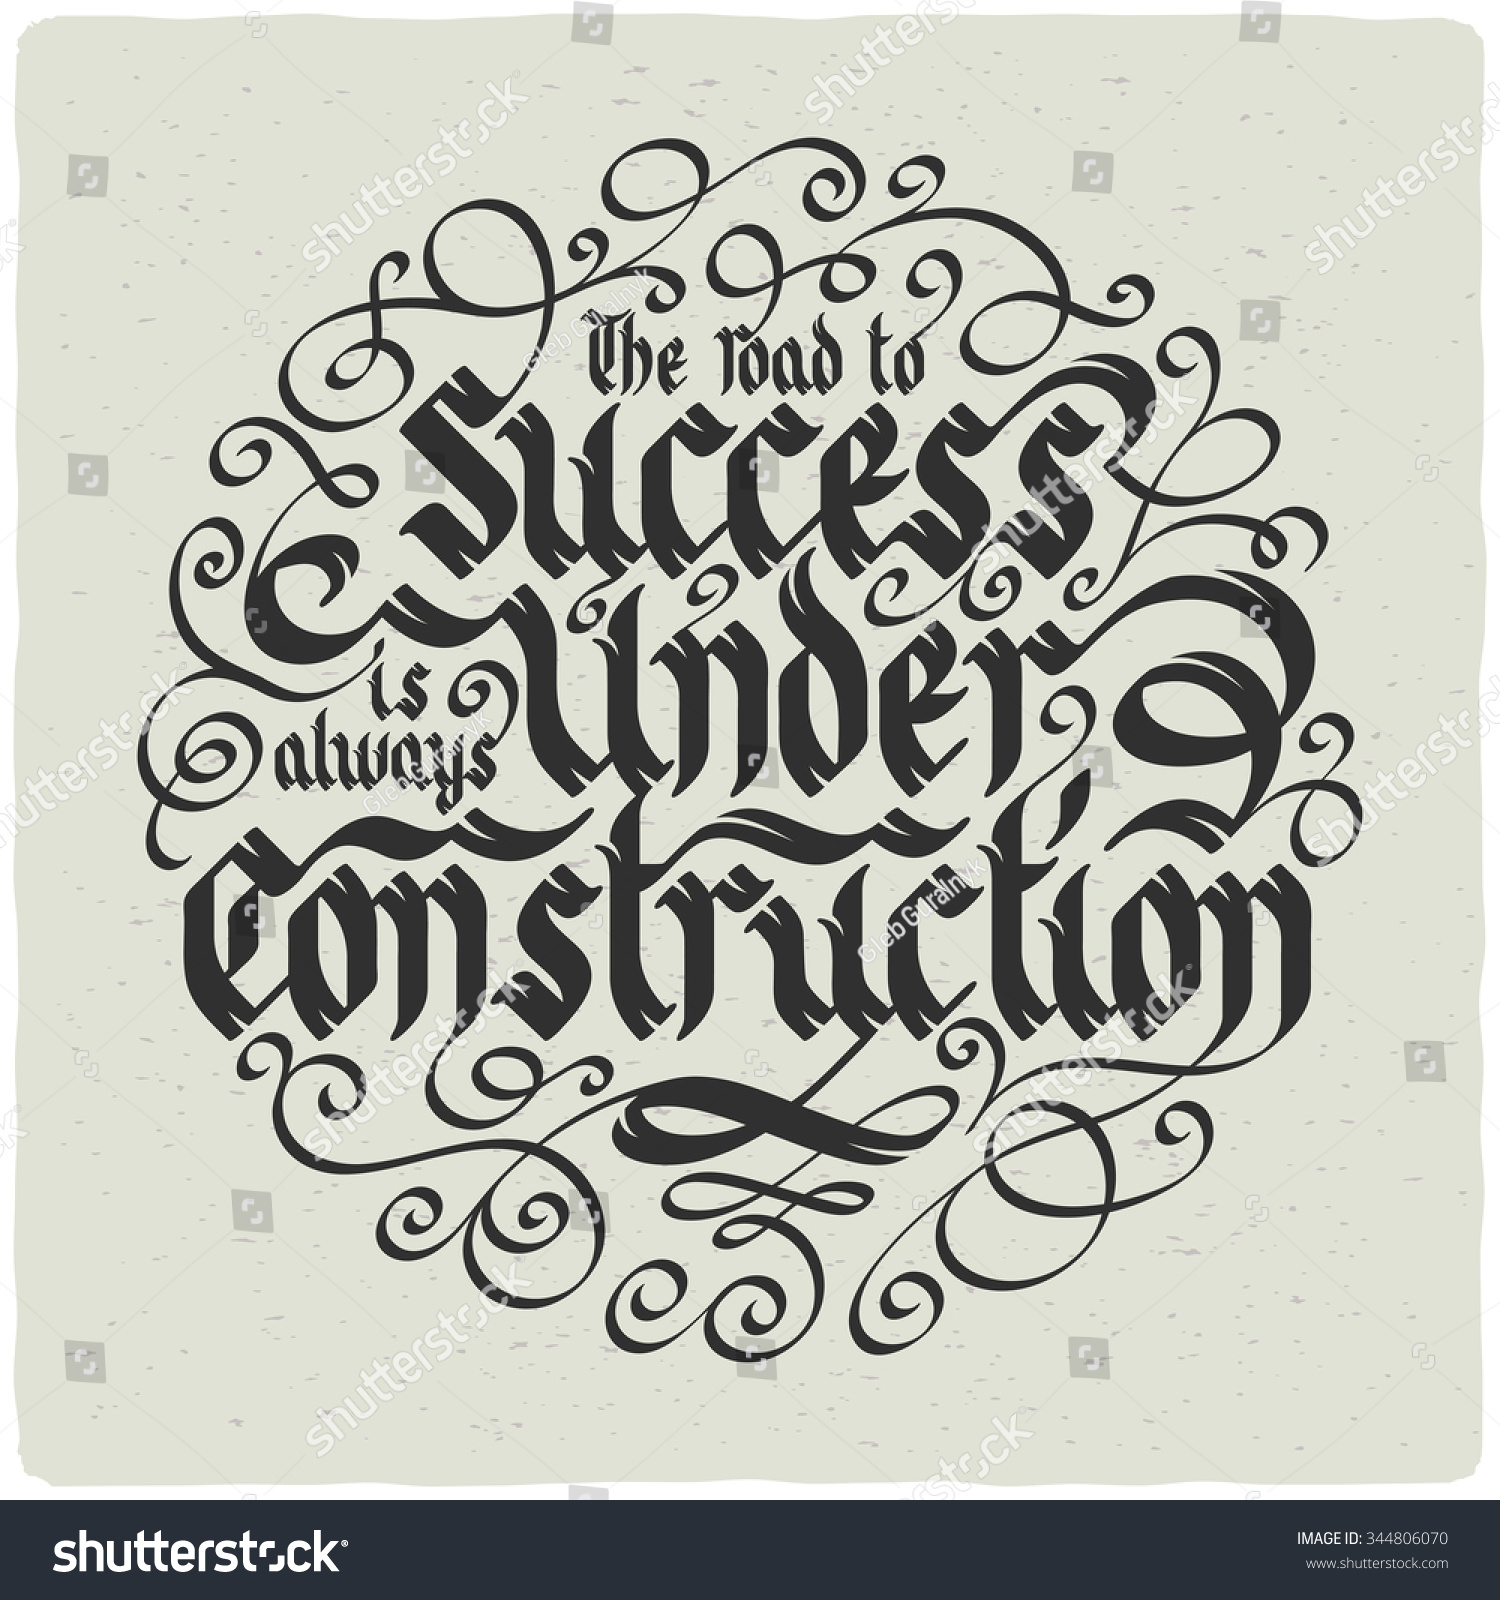 Lettering Composition In Gothic Style With Slogan The Road To Success Is Always Under Construction